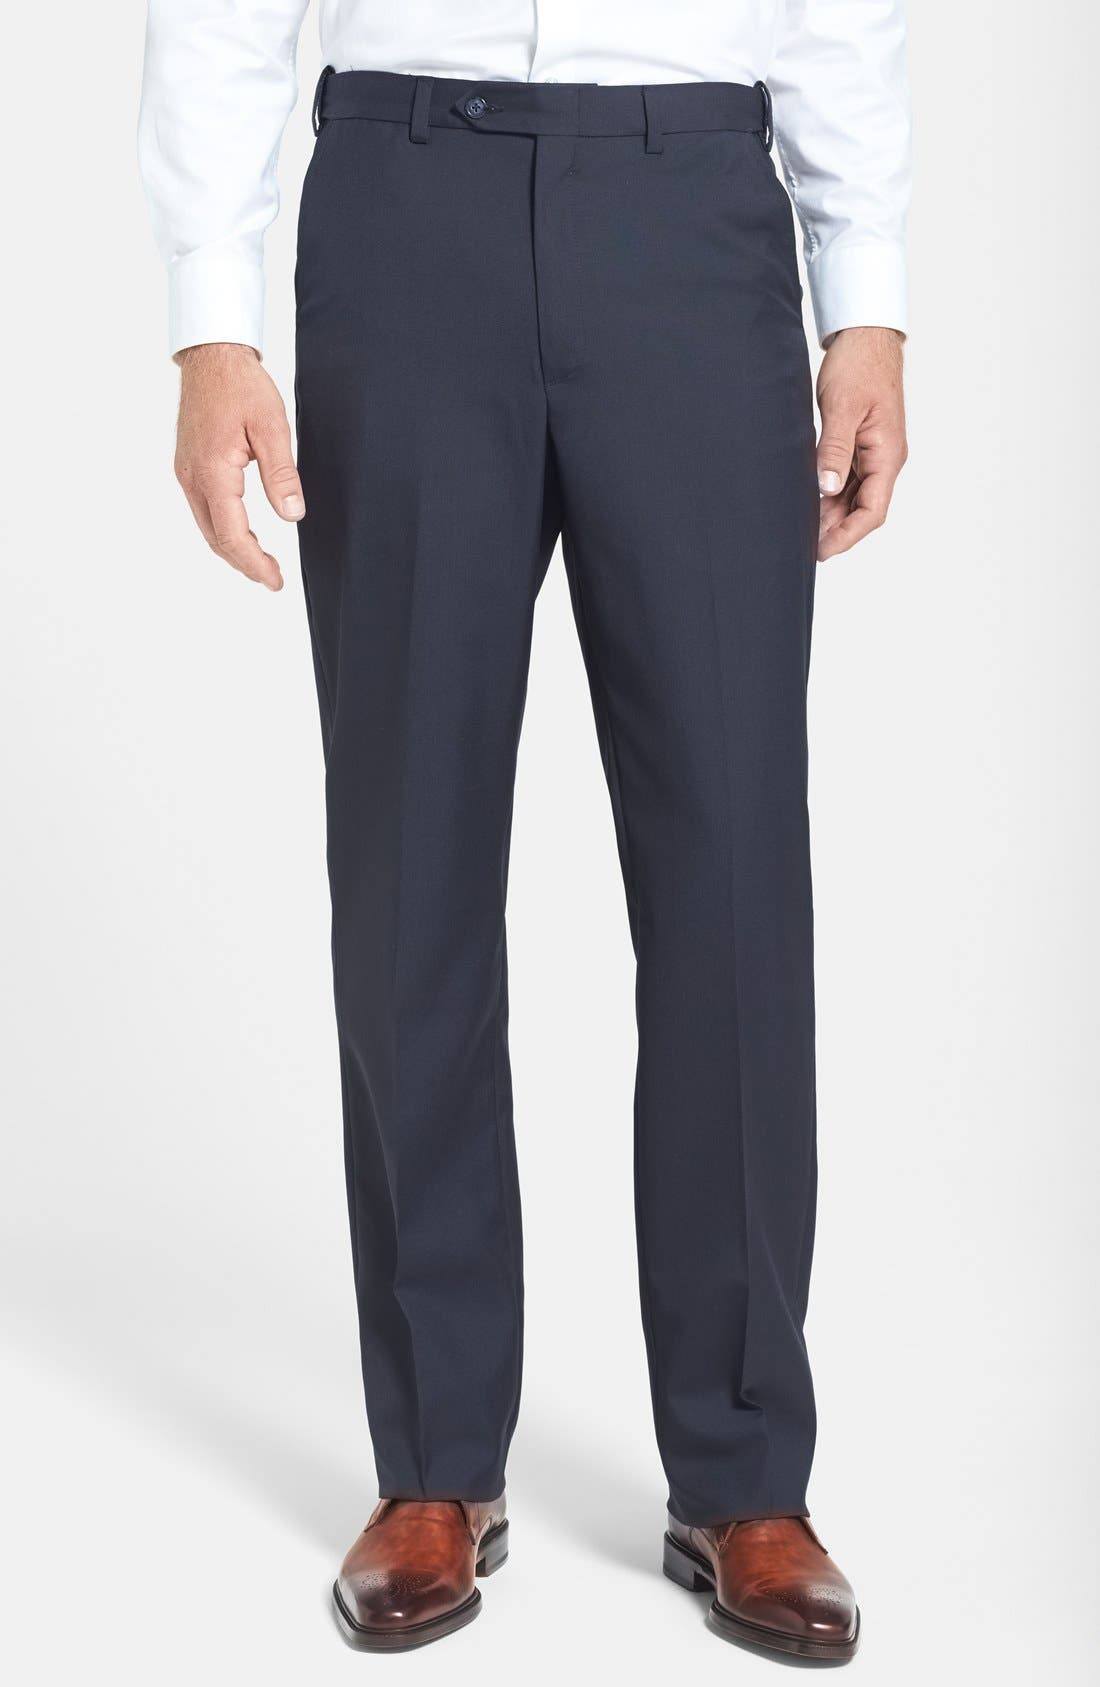 Main Image - Berle Self Sizer Waist Tropical Weight Flat Front Trousers